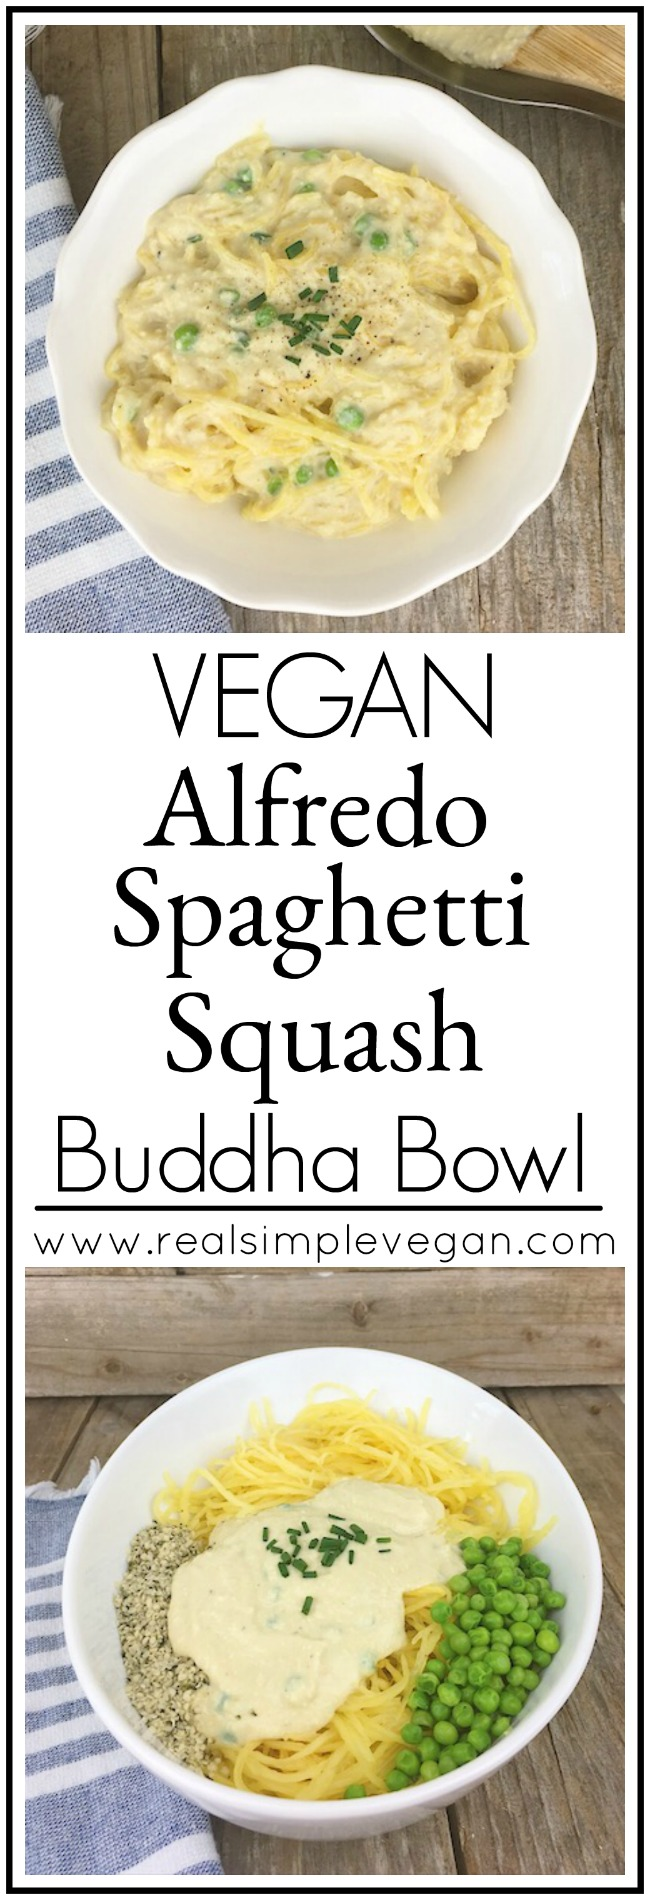 Vegan Alfredo Spaghetti Squash Buddha Bowl Real Simple Vegan